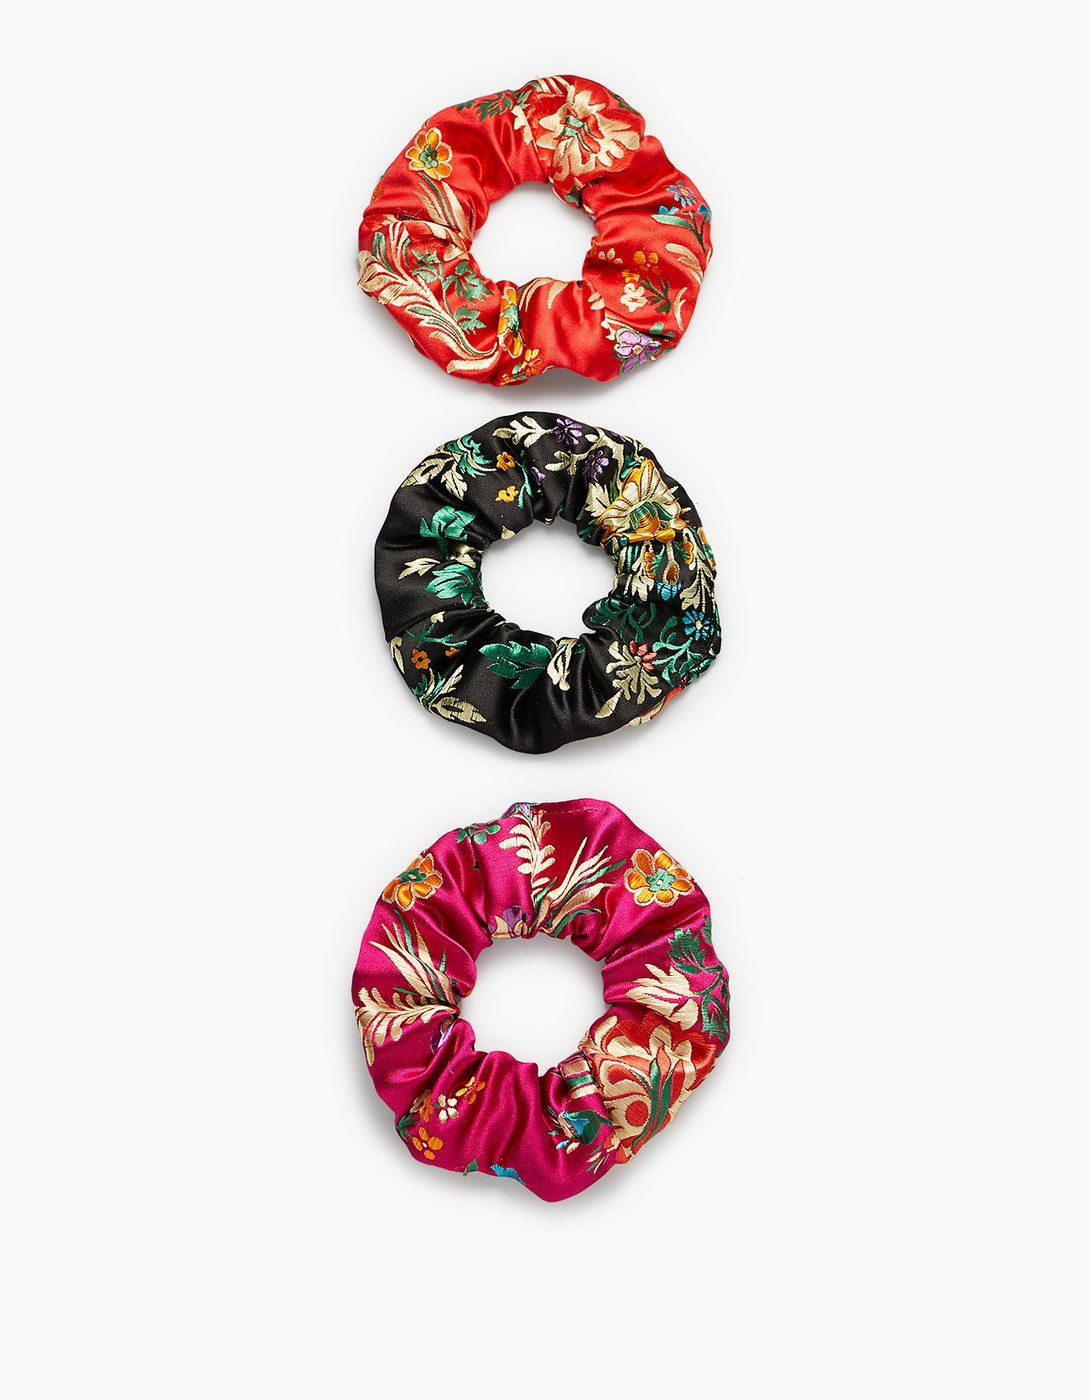 Pin By Kyra Scholte On Pv18 Accesorios Hair Accessories Stradivarius Scrunchies